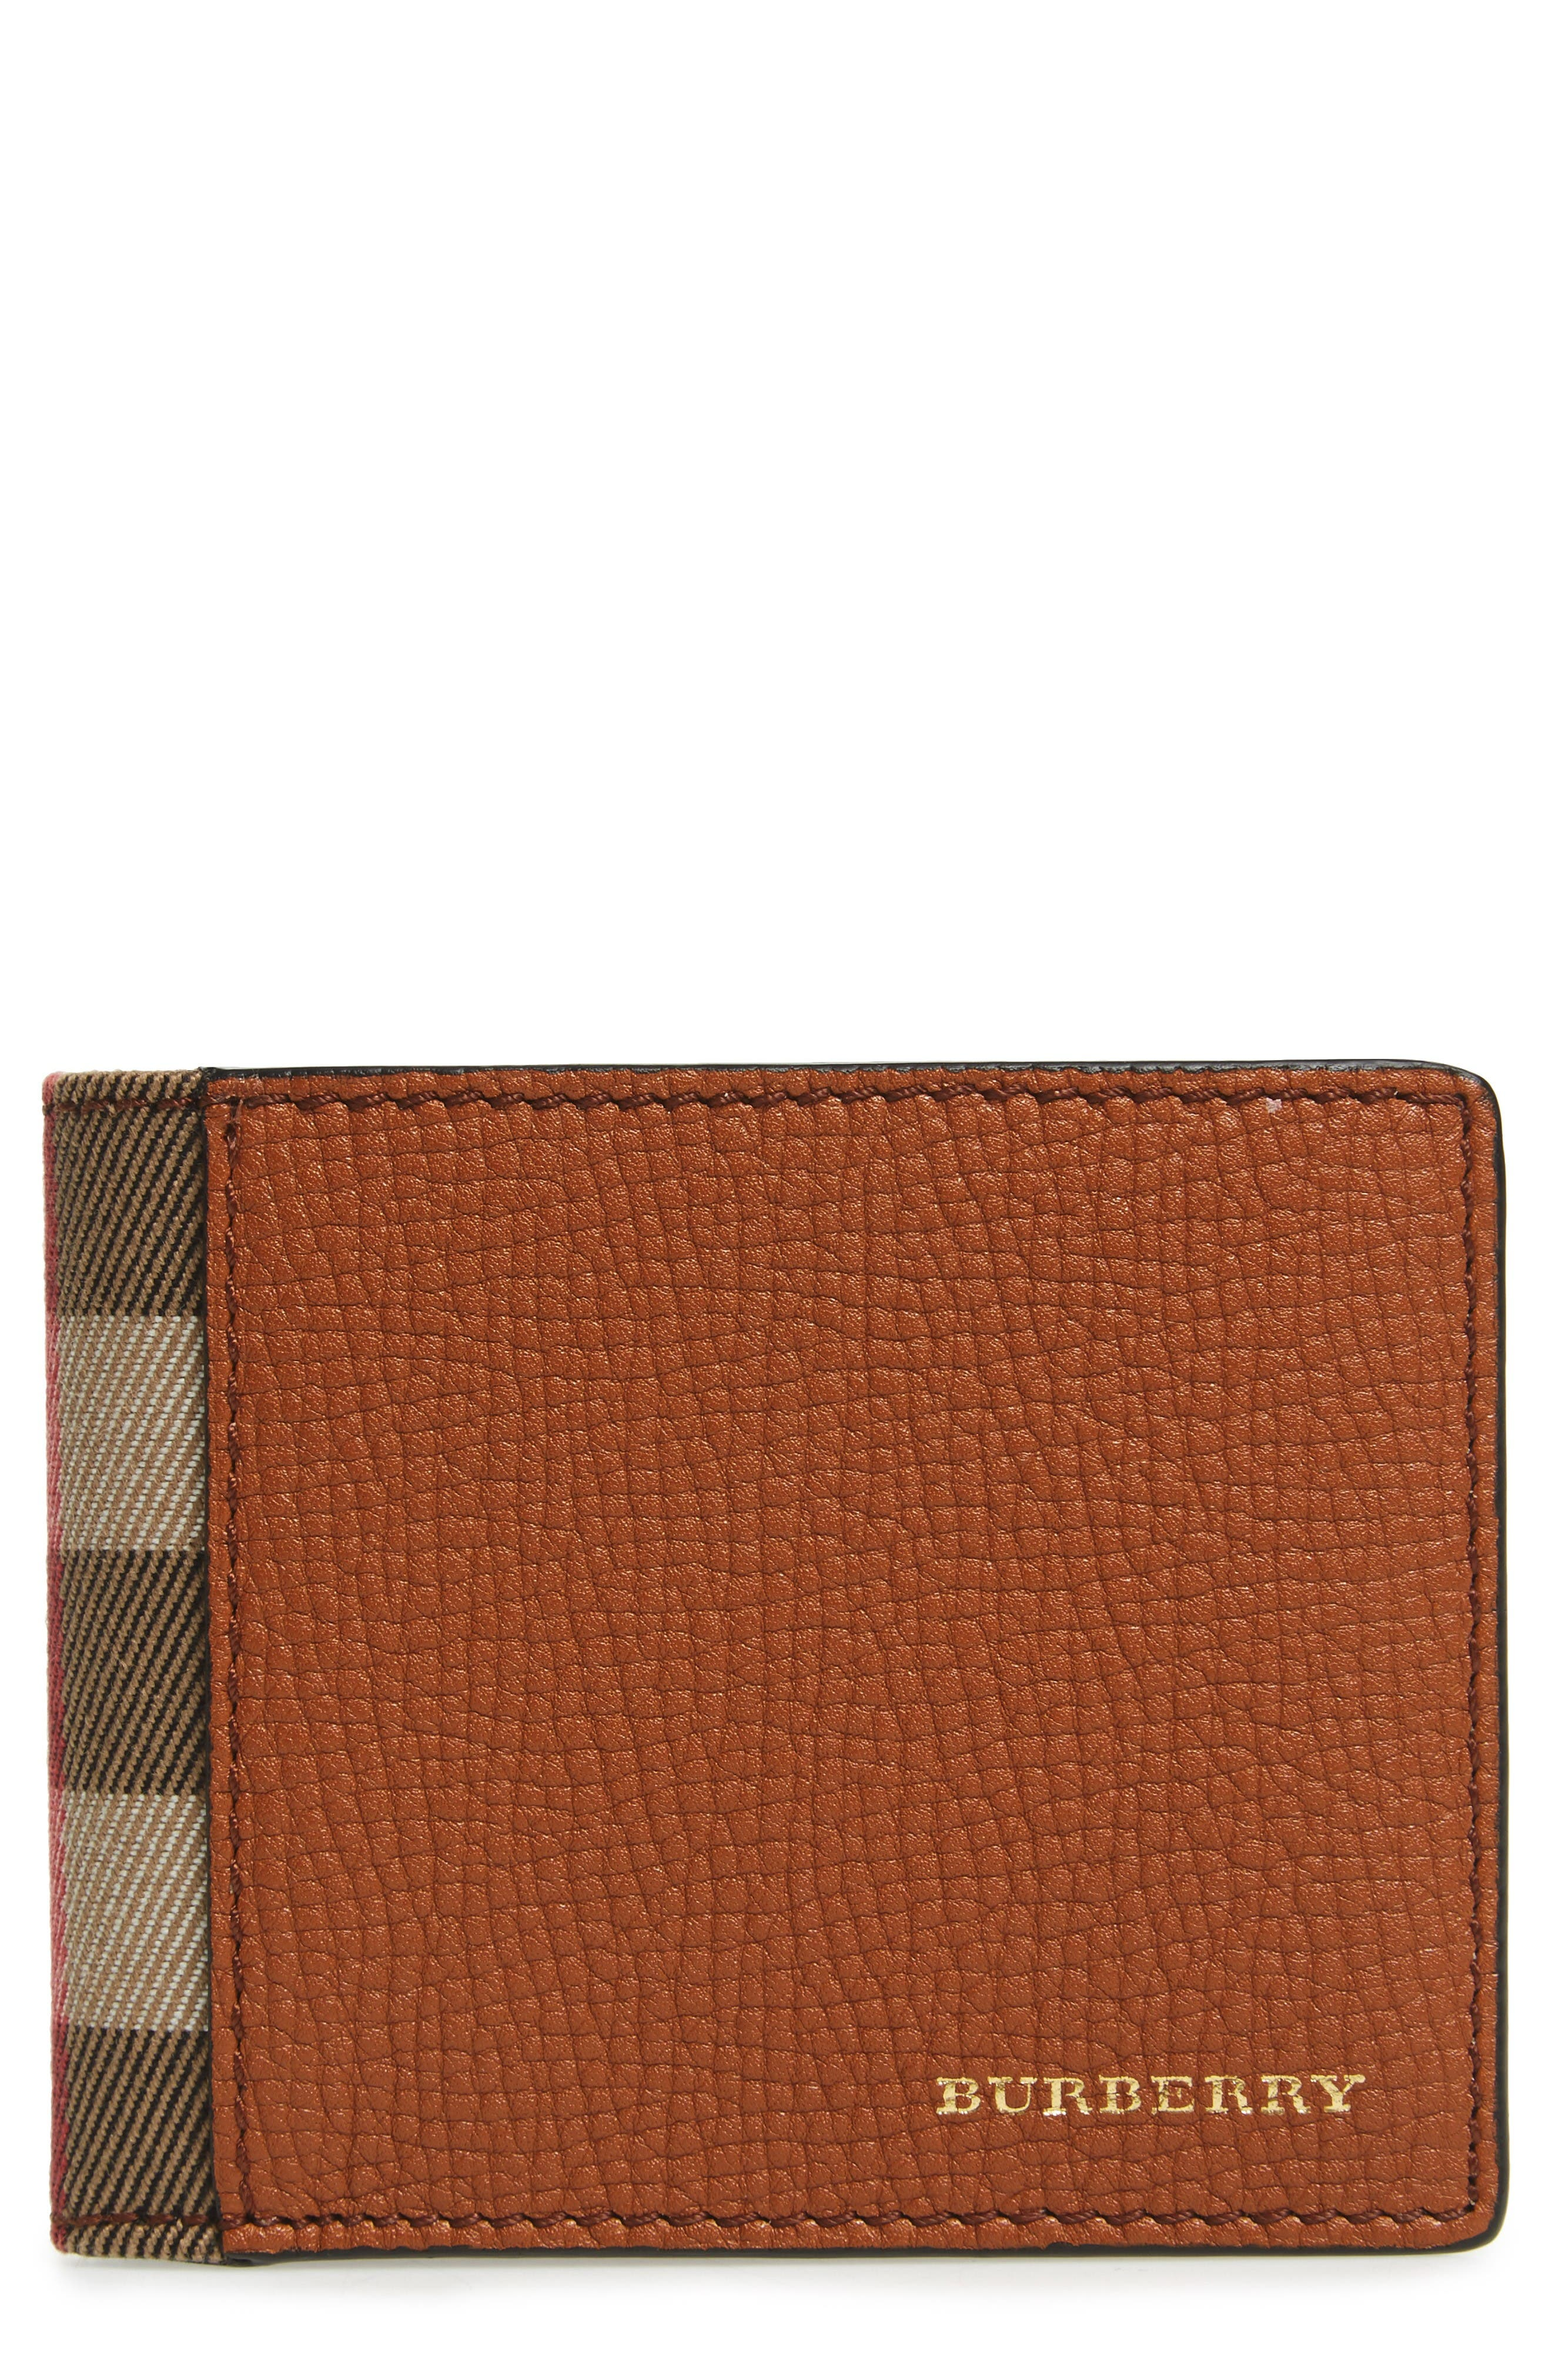 Alternate Image 1 Selected - Burberry Leather Wallet